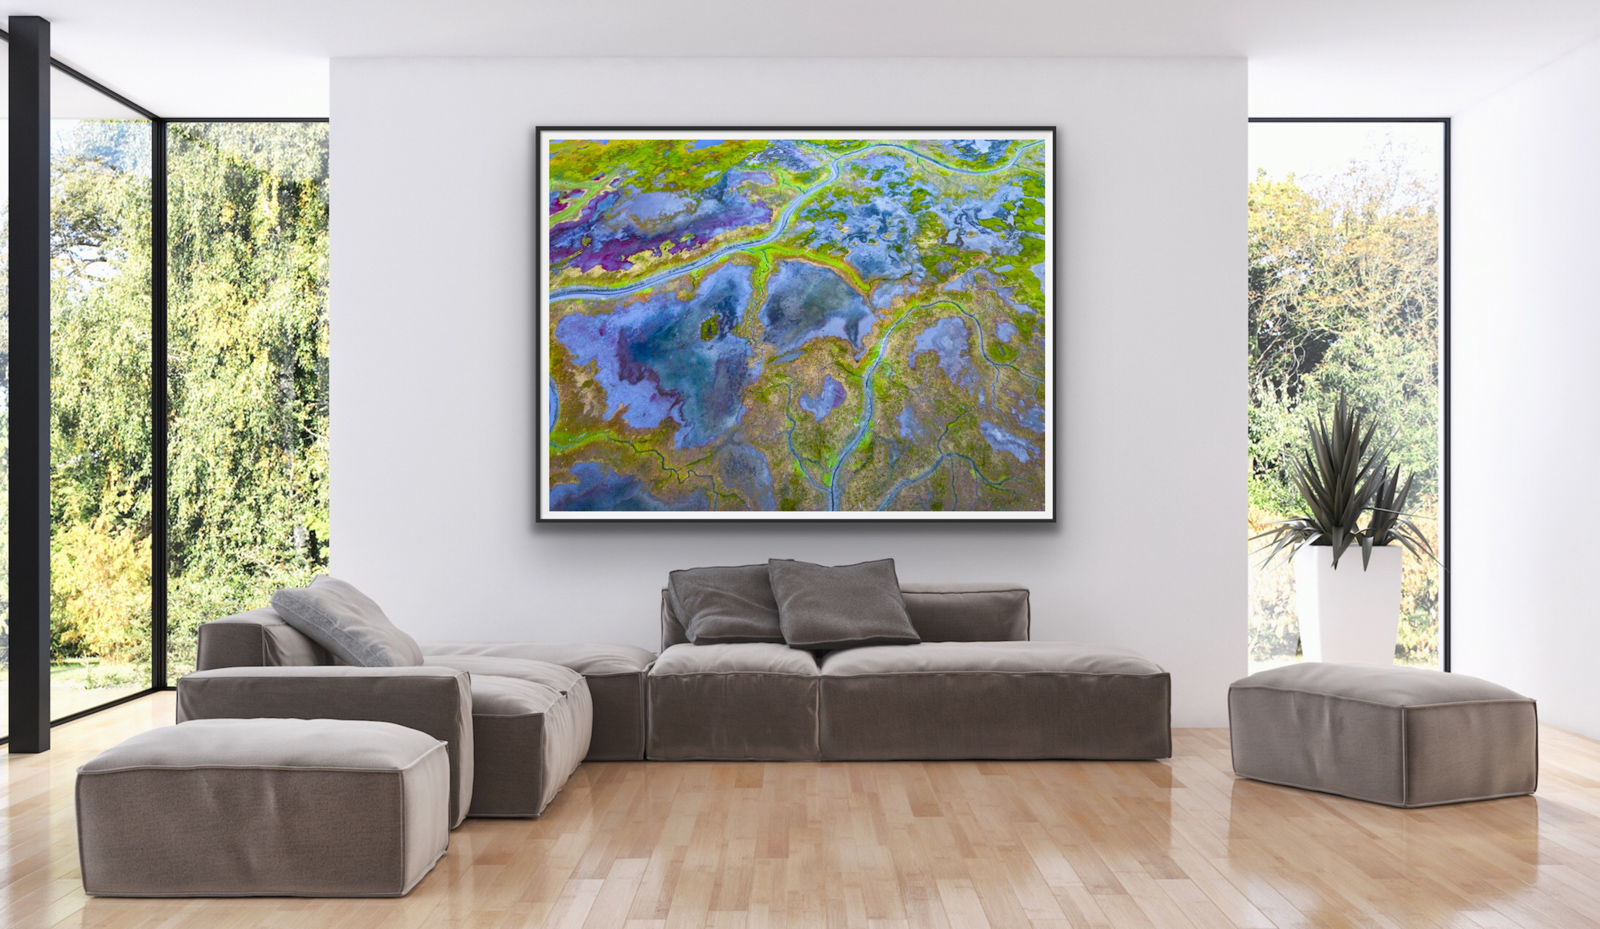 Luxury Fine High Quaintly Photography Prints on your wall art space. By world Famous Fine art Photographer Jess Lee